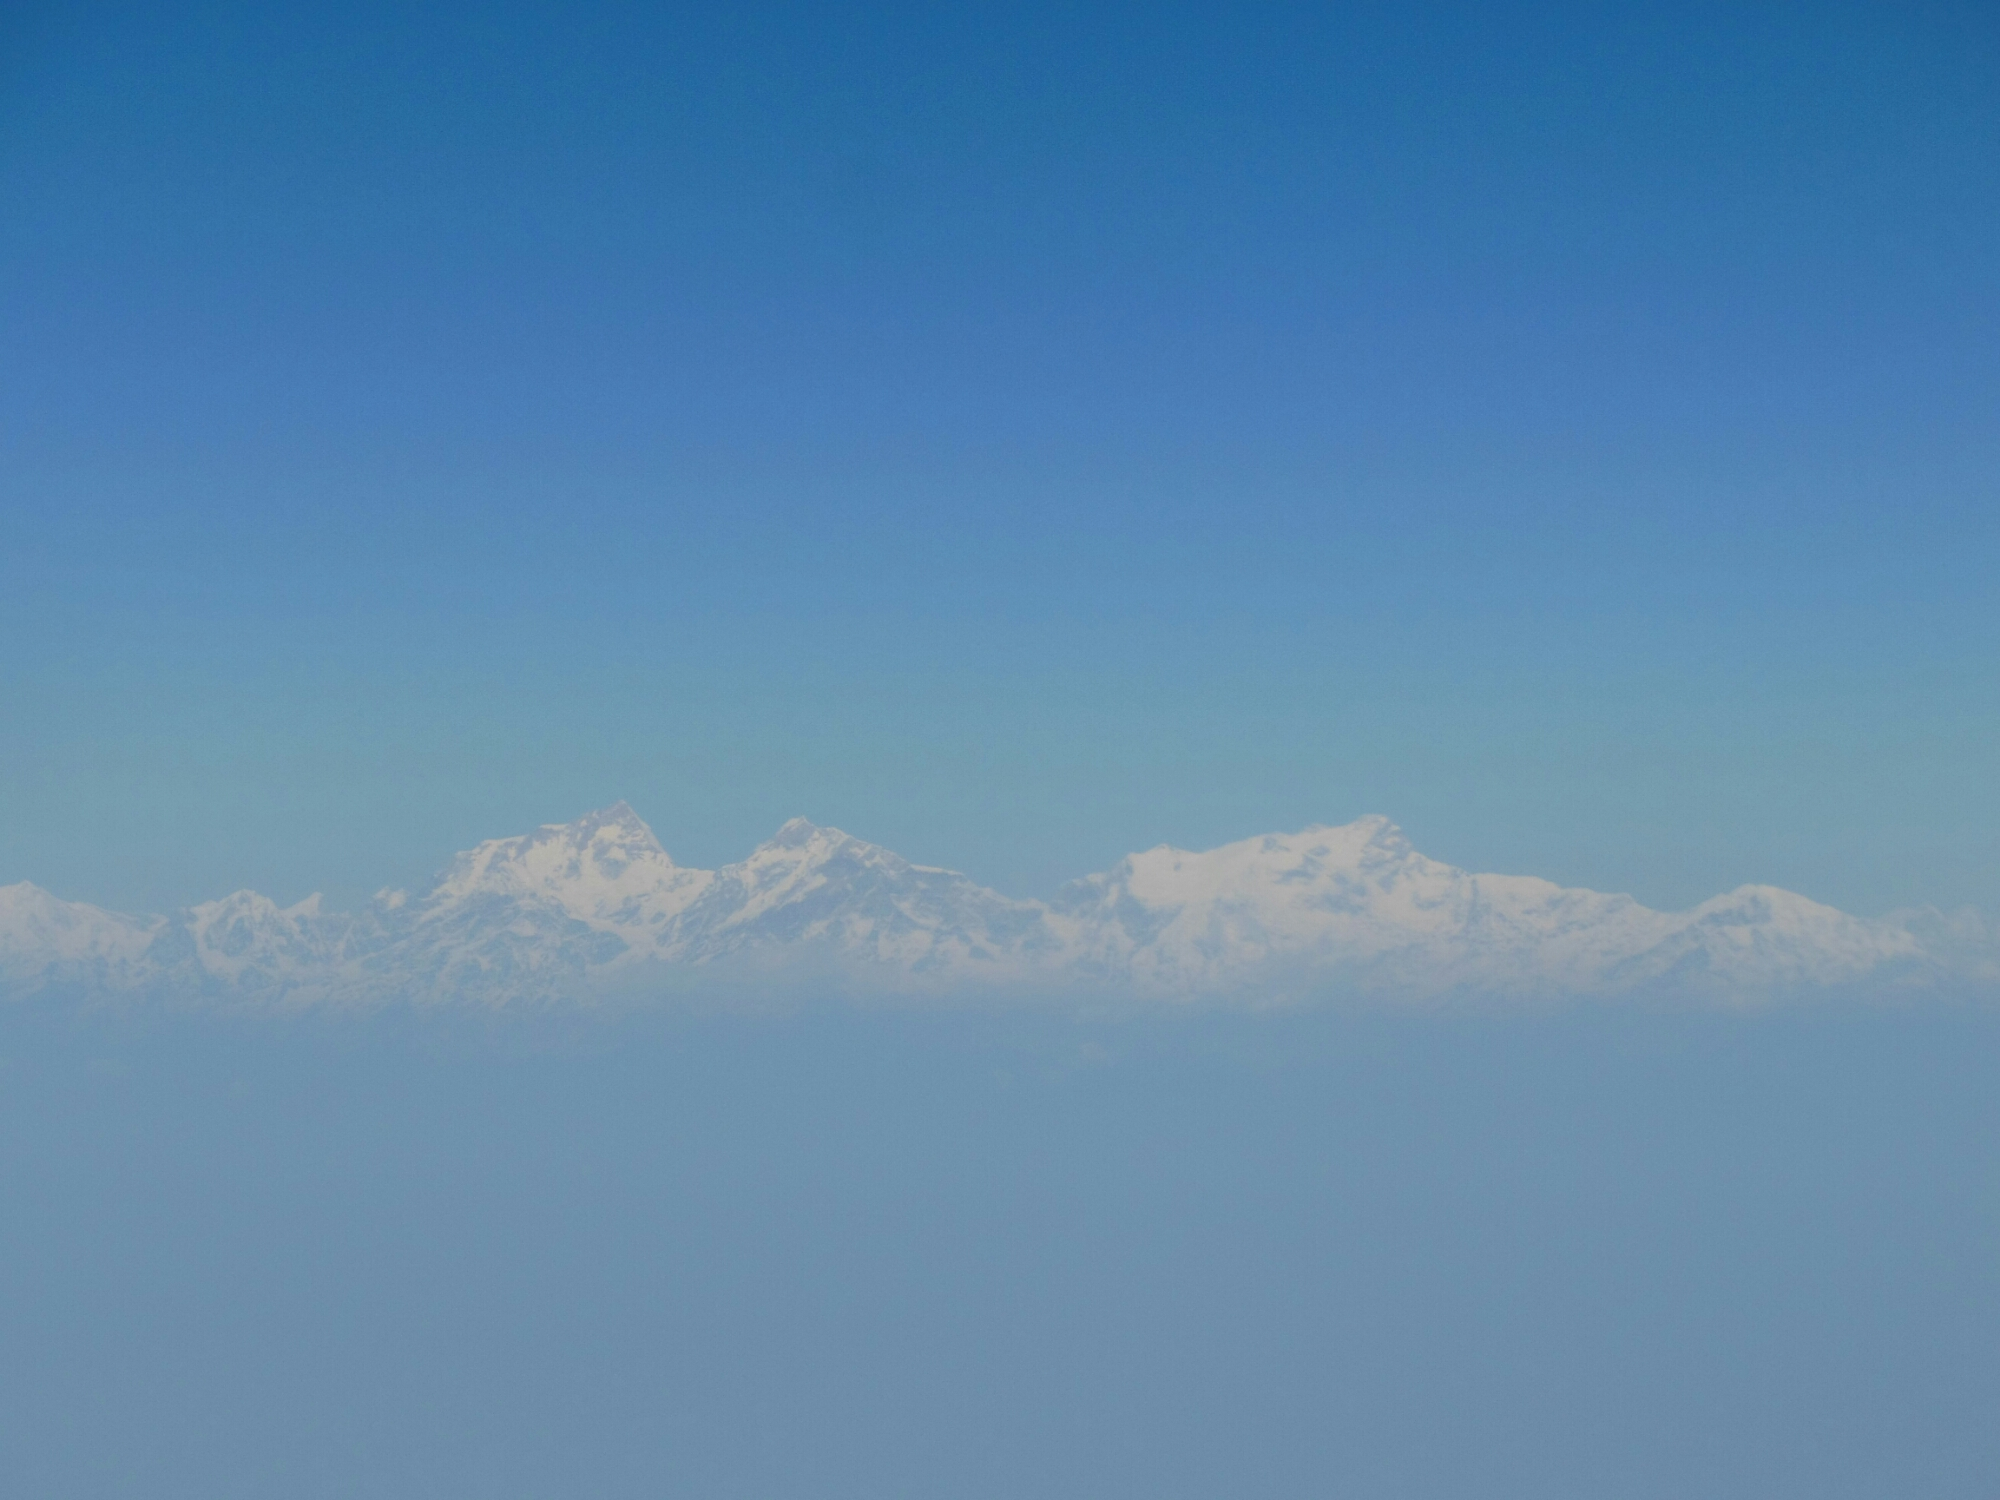 Nepal- Country tucked in the Himalayas